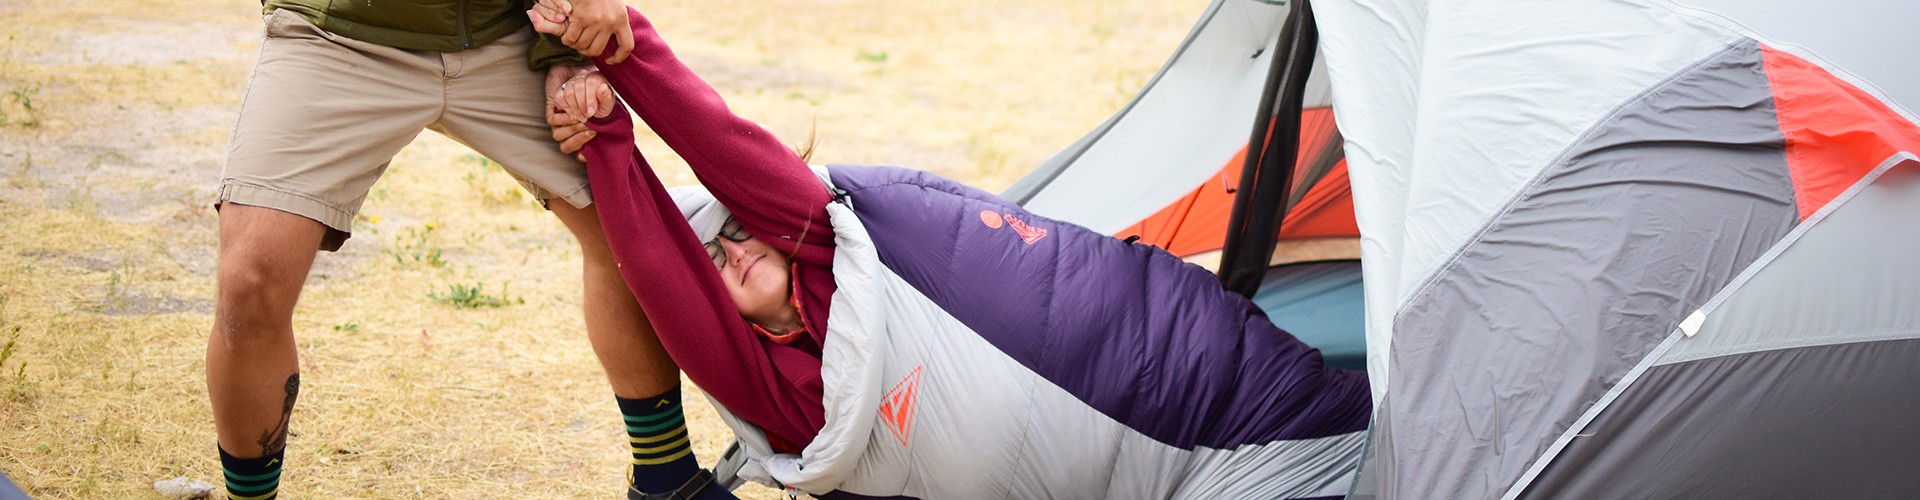 Man playfully pulling woman out of her tent